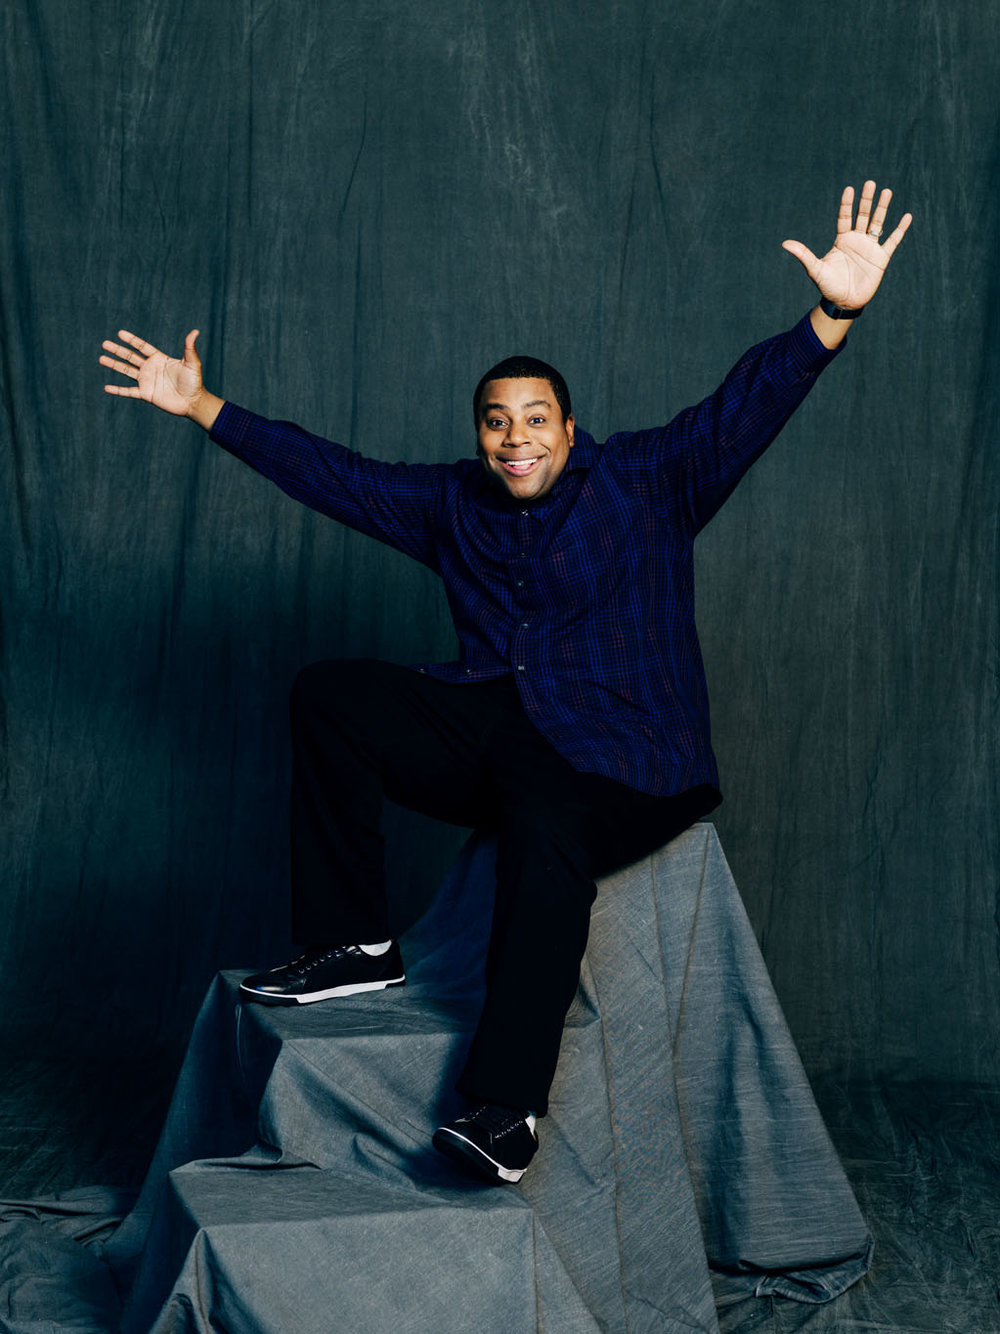 canziani_kenan_thompson_people_0103.jpg